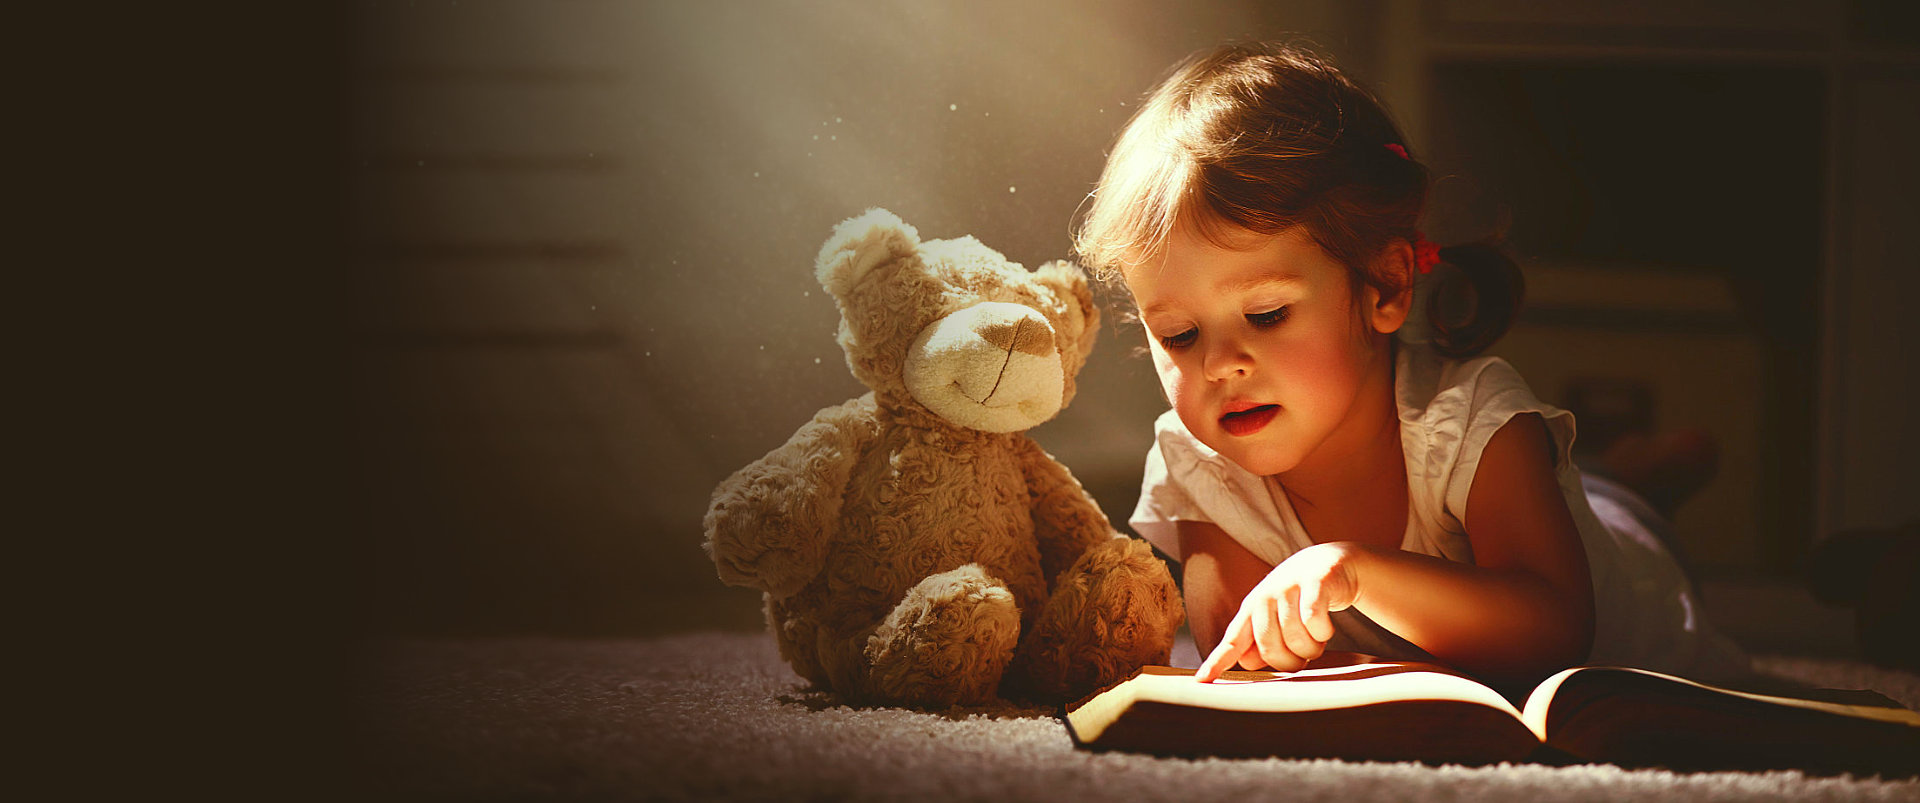 little girl with her teddy bear reading a book